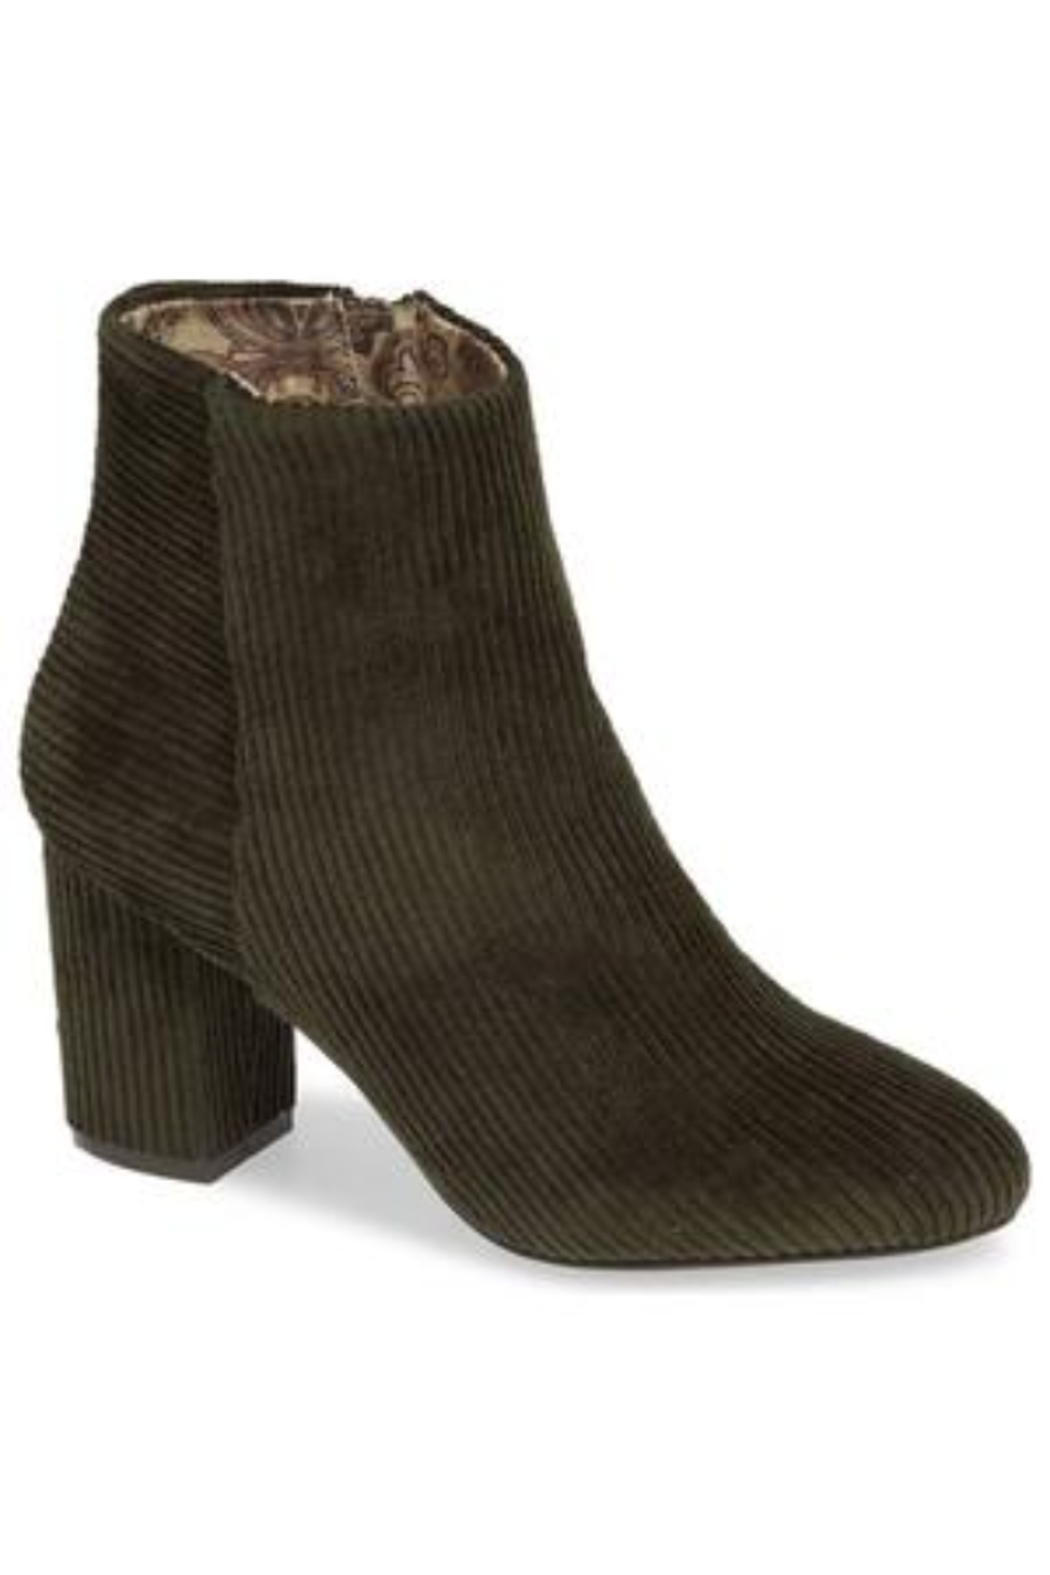 Band Of Gypsies Andrea corduroy ankle bootoe - Main Image